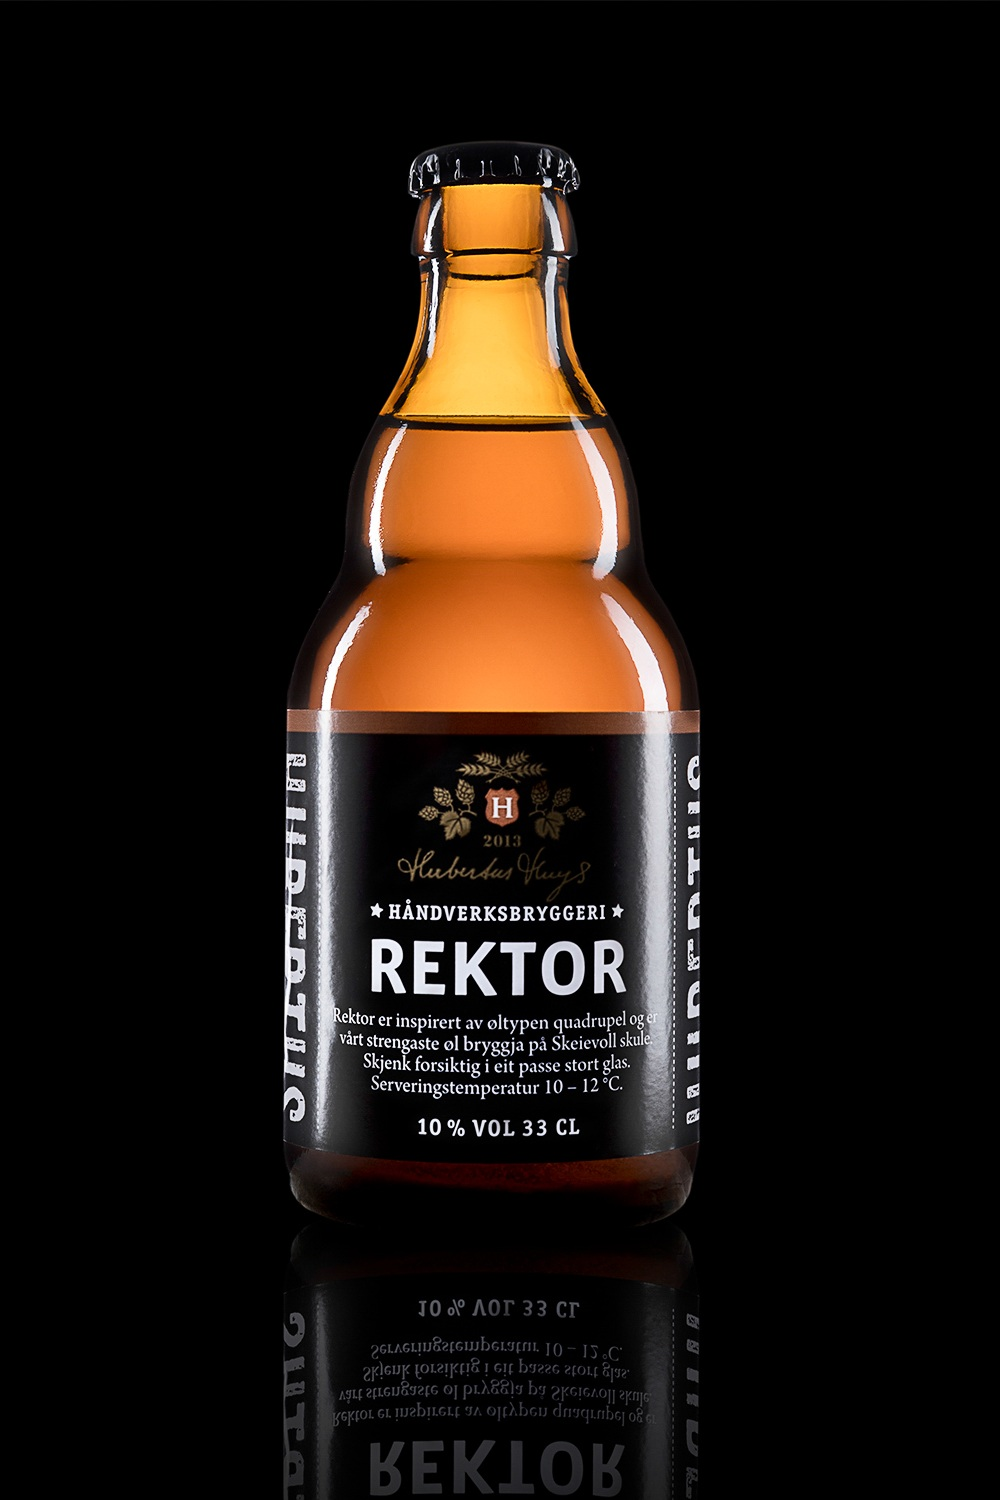 Rektor - Type: Quadrupel.Color: Hazy golden orange.Aroma: Dried and candied fruit, malt.Flavor: Rich, medium bitterness, hints of candy sugar, caramel and raisins.Contents: Alcohol 10%.Food pairing: Game and beef.Vinmonopolet